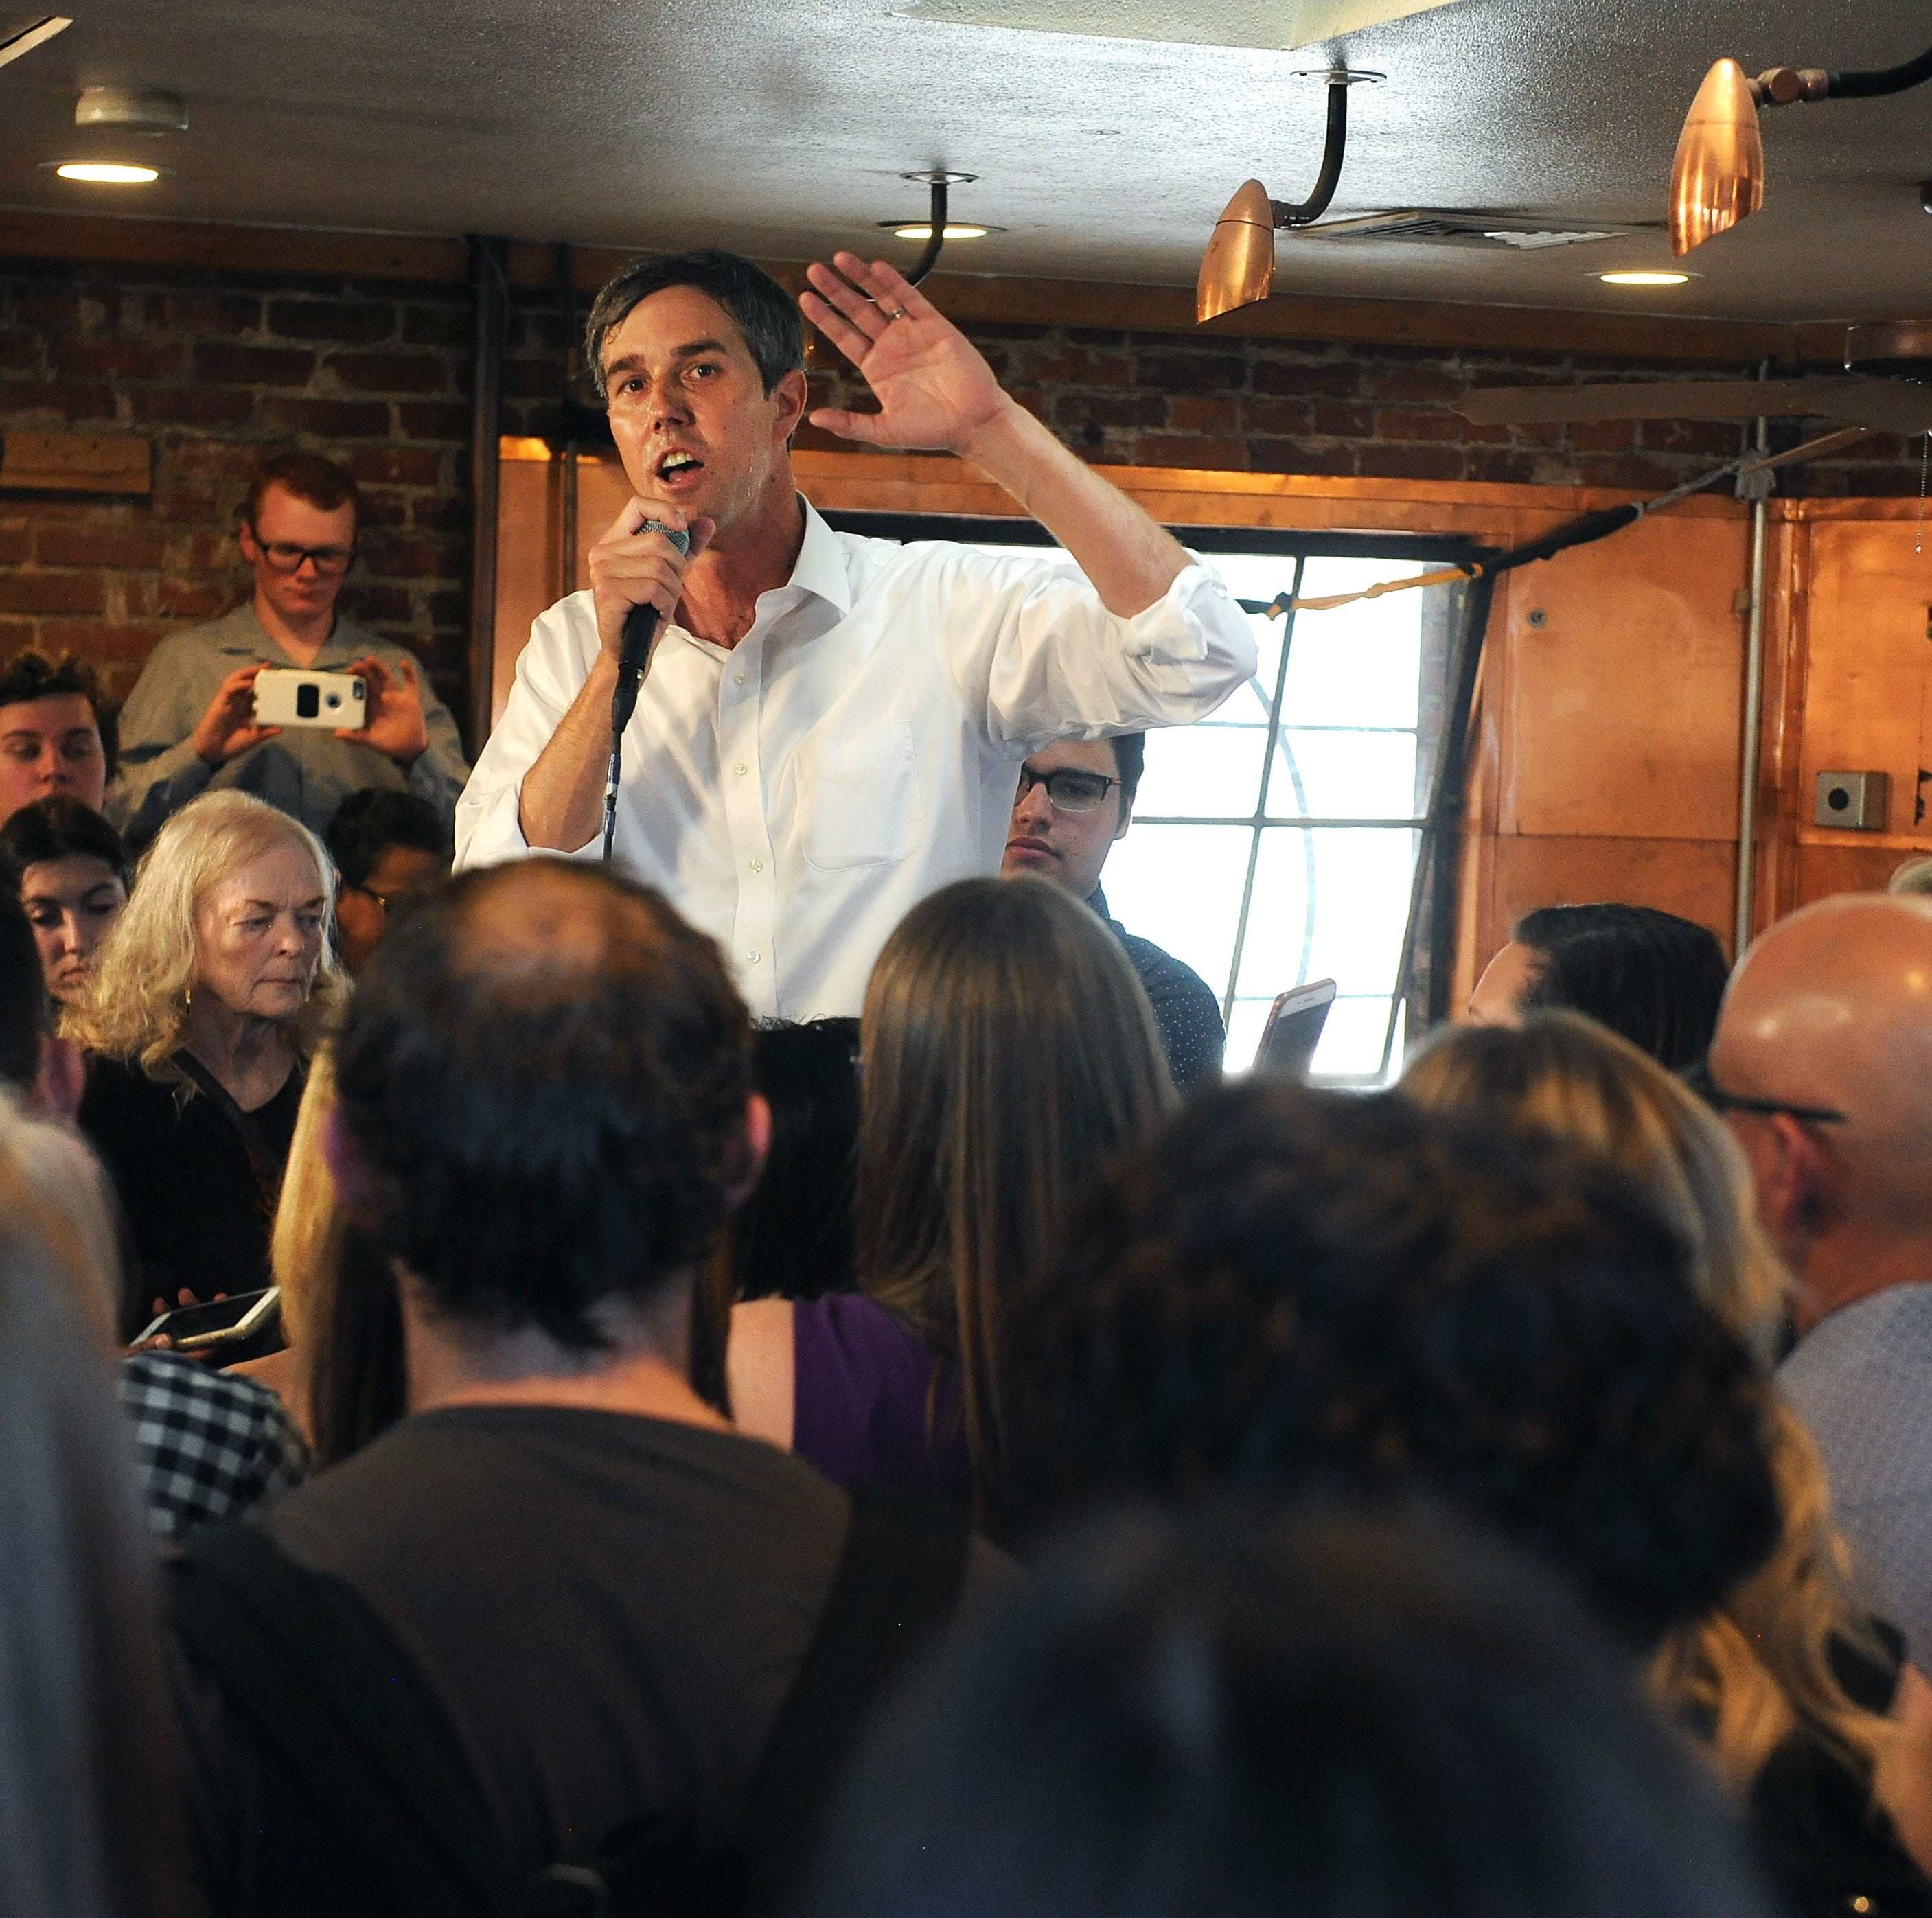 Democratic candidate for President Beto O'Rourke speaks during a campaign stop at Bibo Coffee in Reno on April 25, 2019.